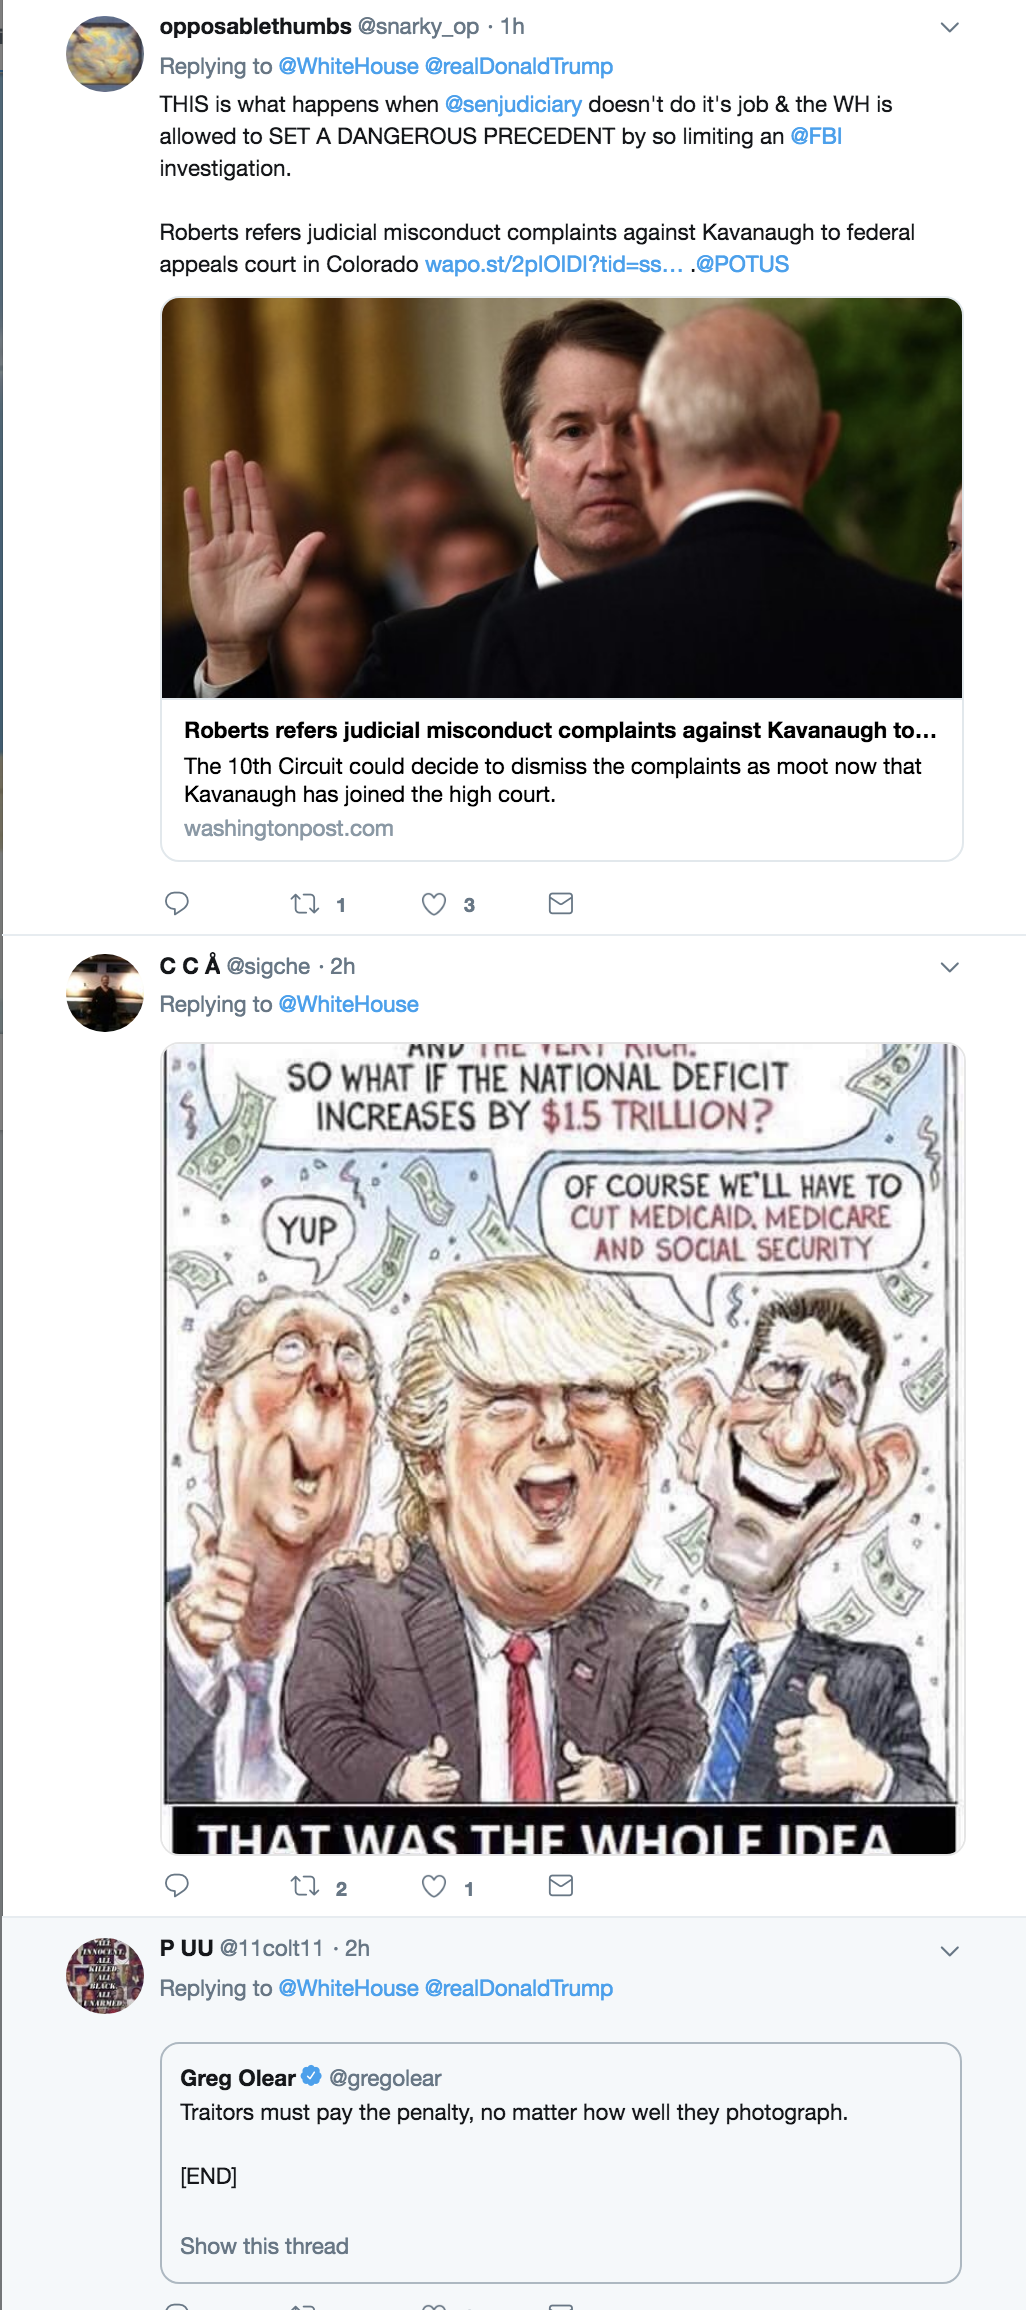 Screen-Shot-2018-10-11-at-3.17.14-PM Trump Tweets Video About Signing Law To Protect Musicians & Gets Eaten Alive Donald Trump Economy Hollywood Music Politics Television Top Stories Videos